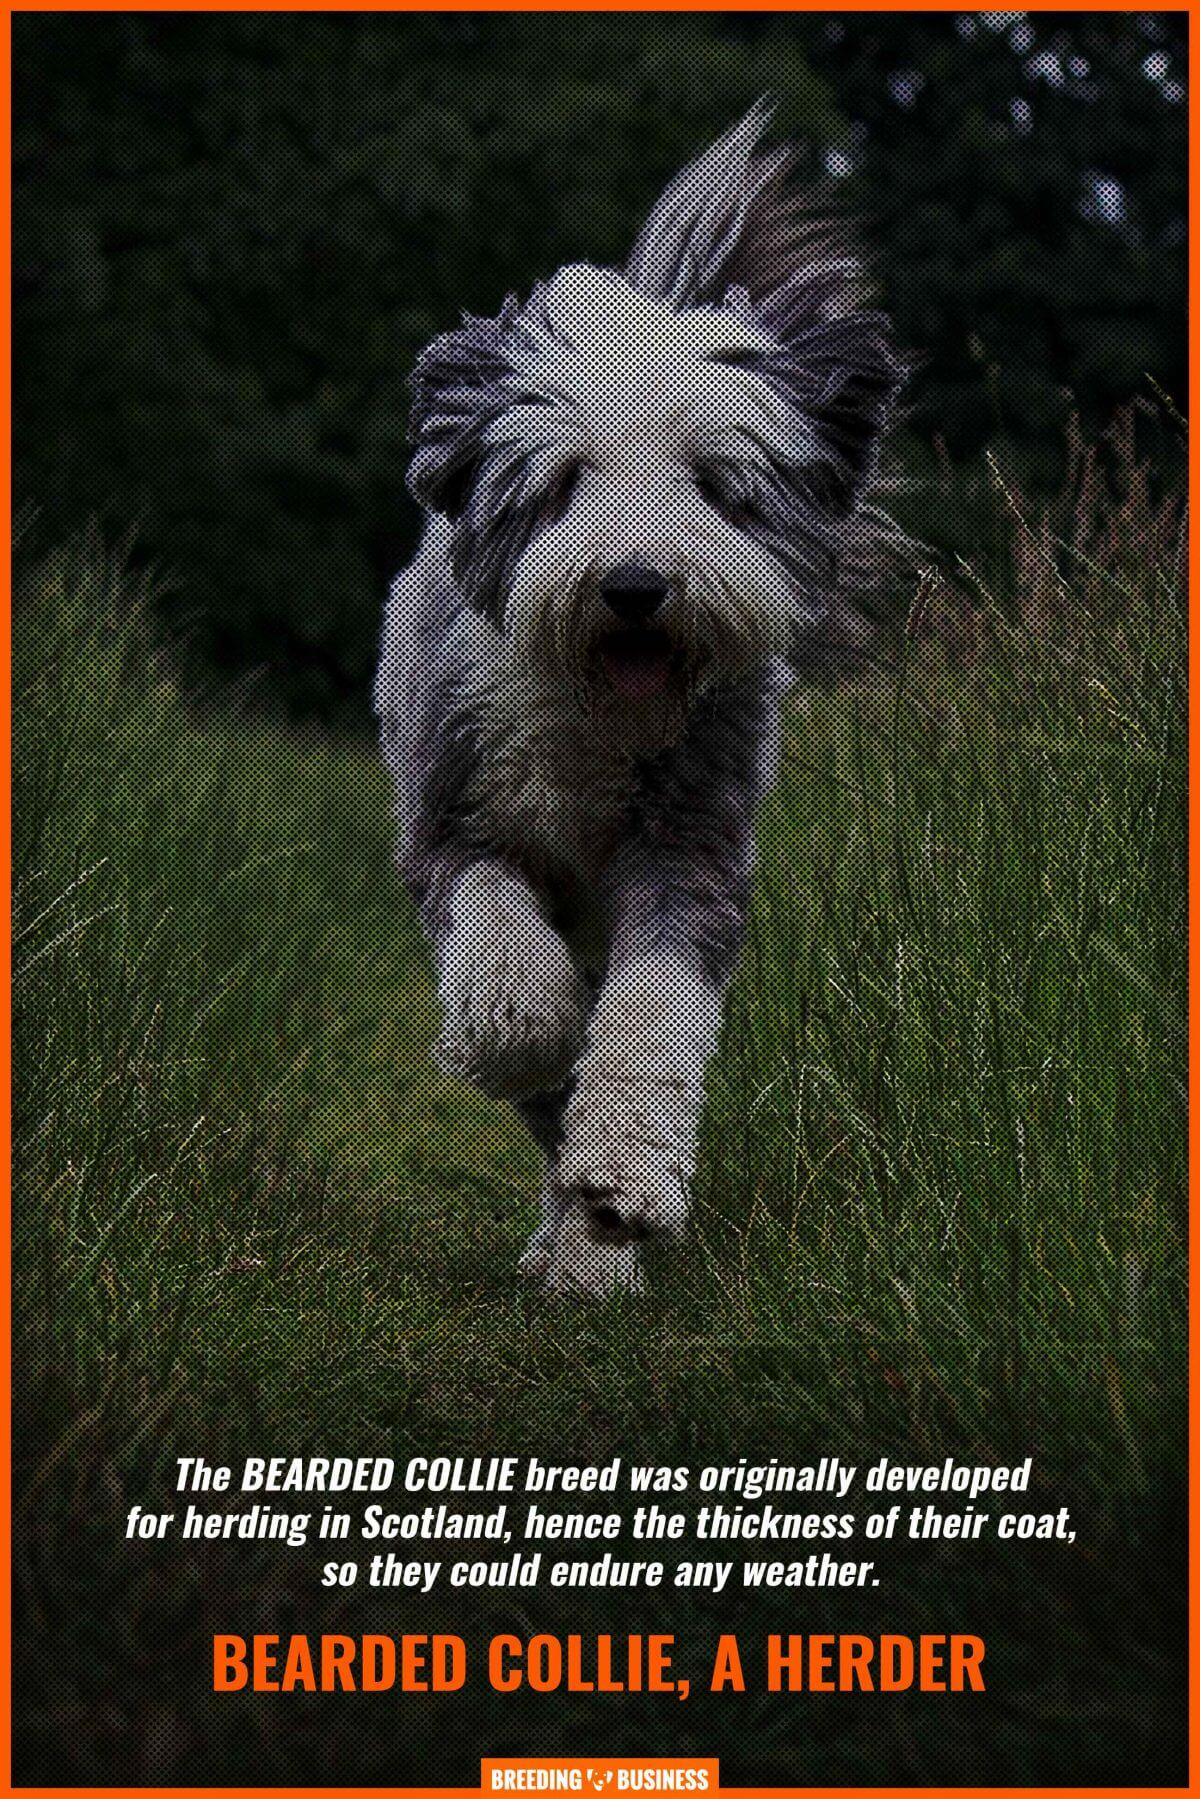 Bearded Collies as herding dogs